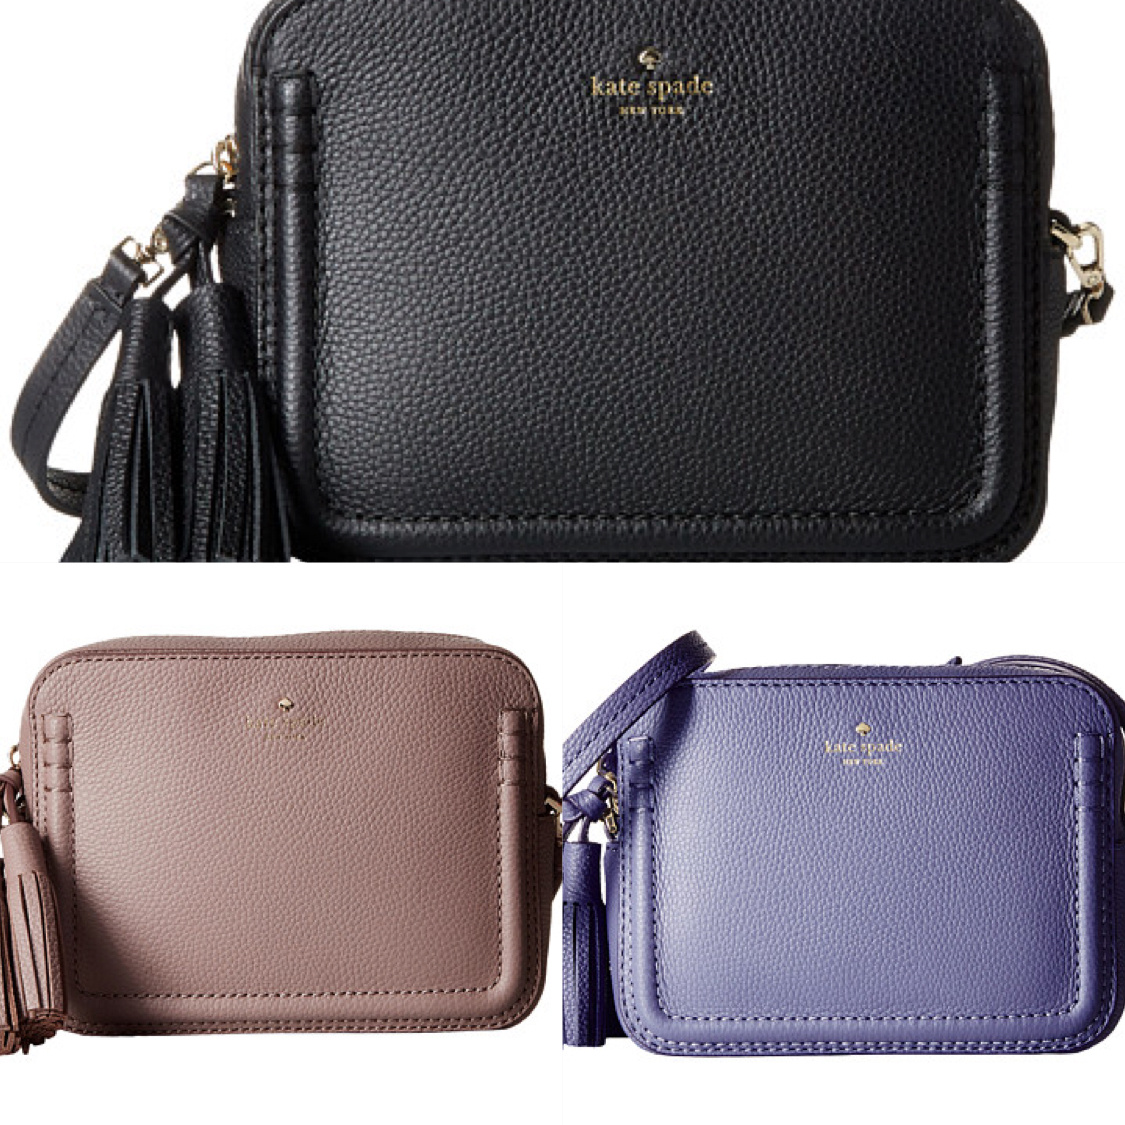 ☆kate spade new york☆バッグ